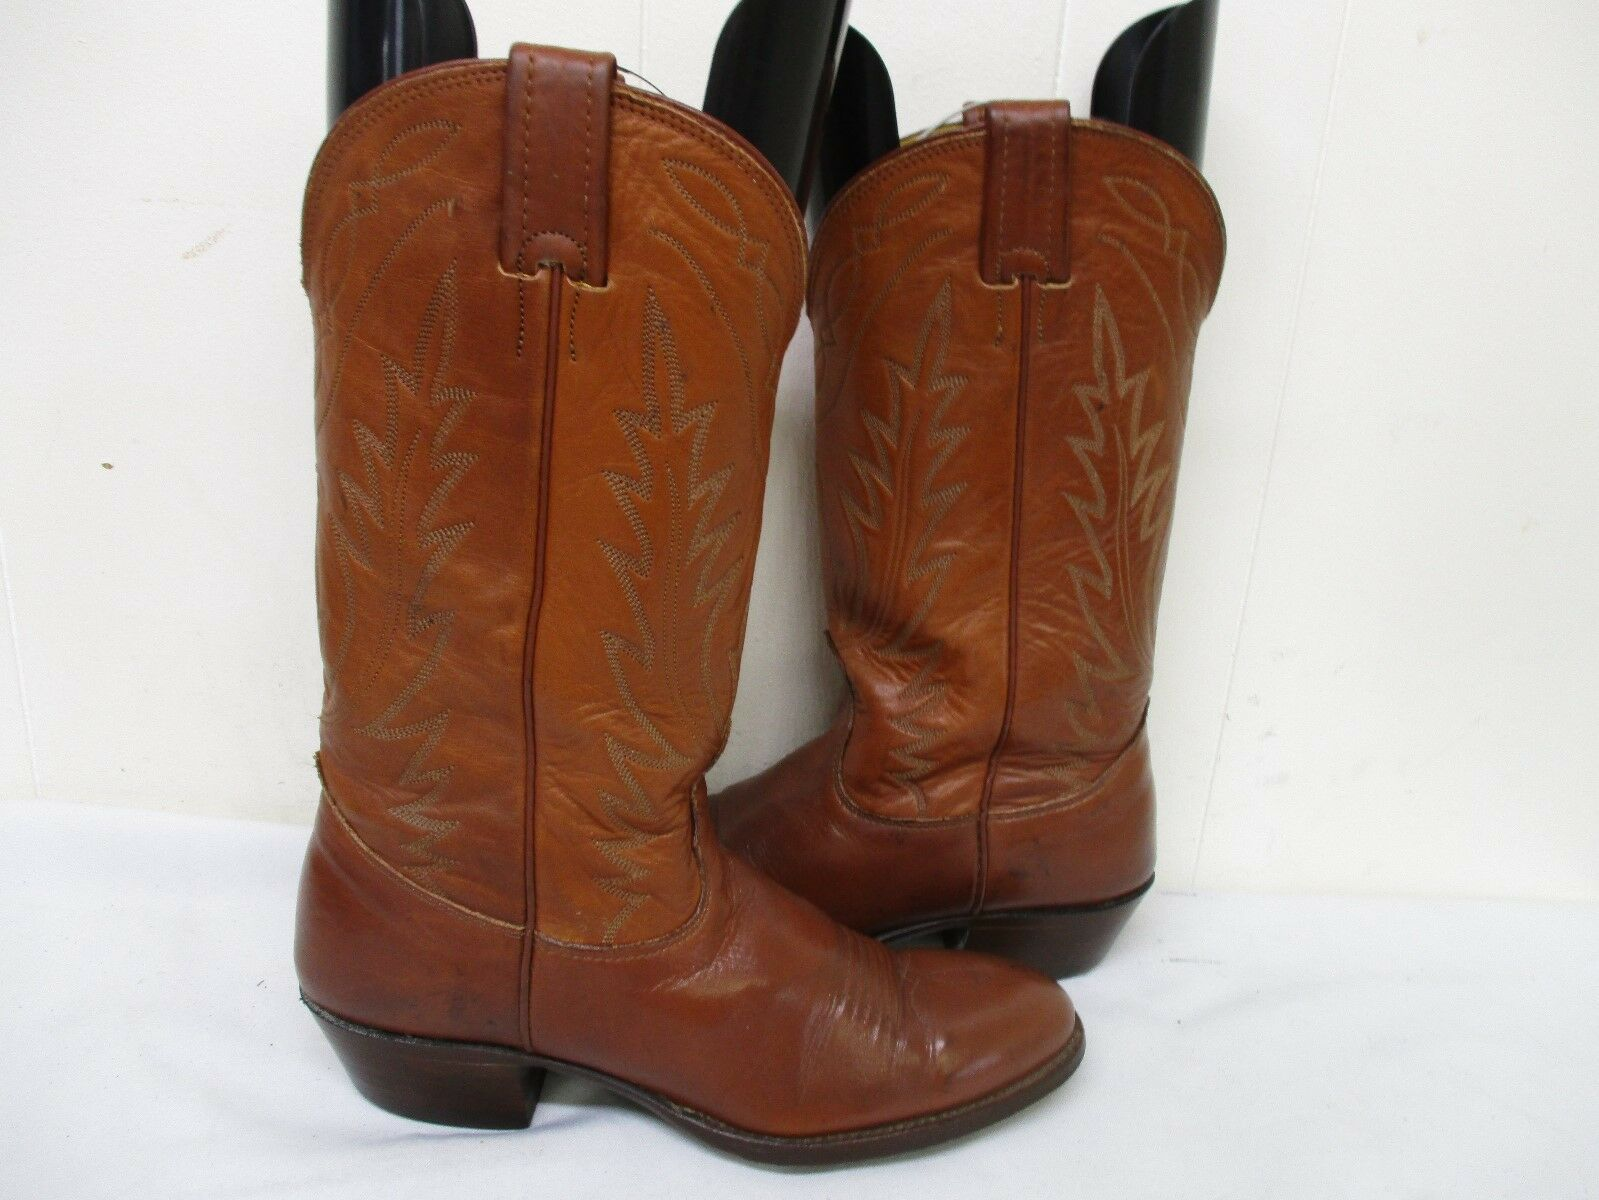 NOCONA Brown Leather Cowboy Boots Womens Size 7 B Style 98993 USA